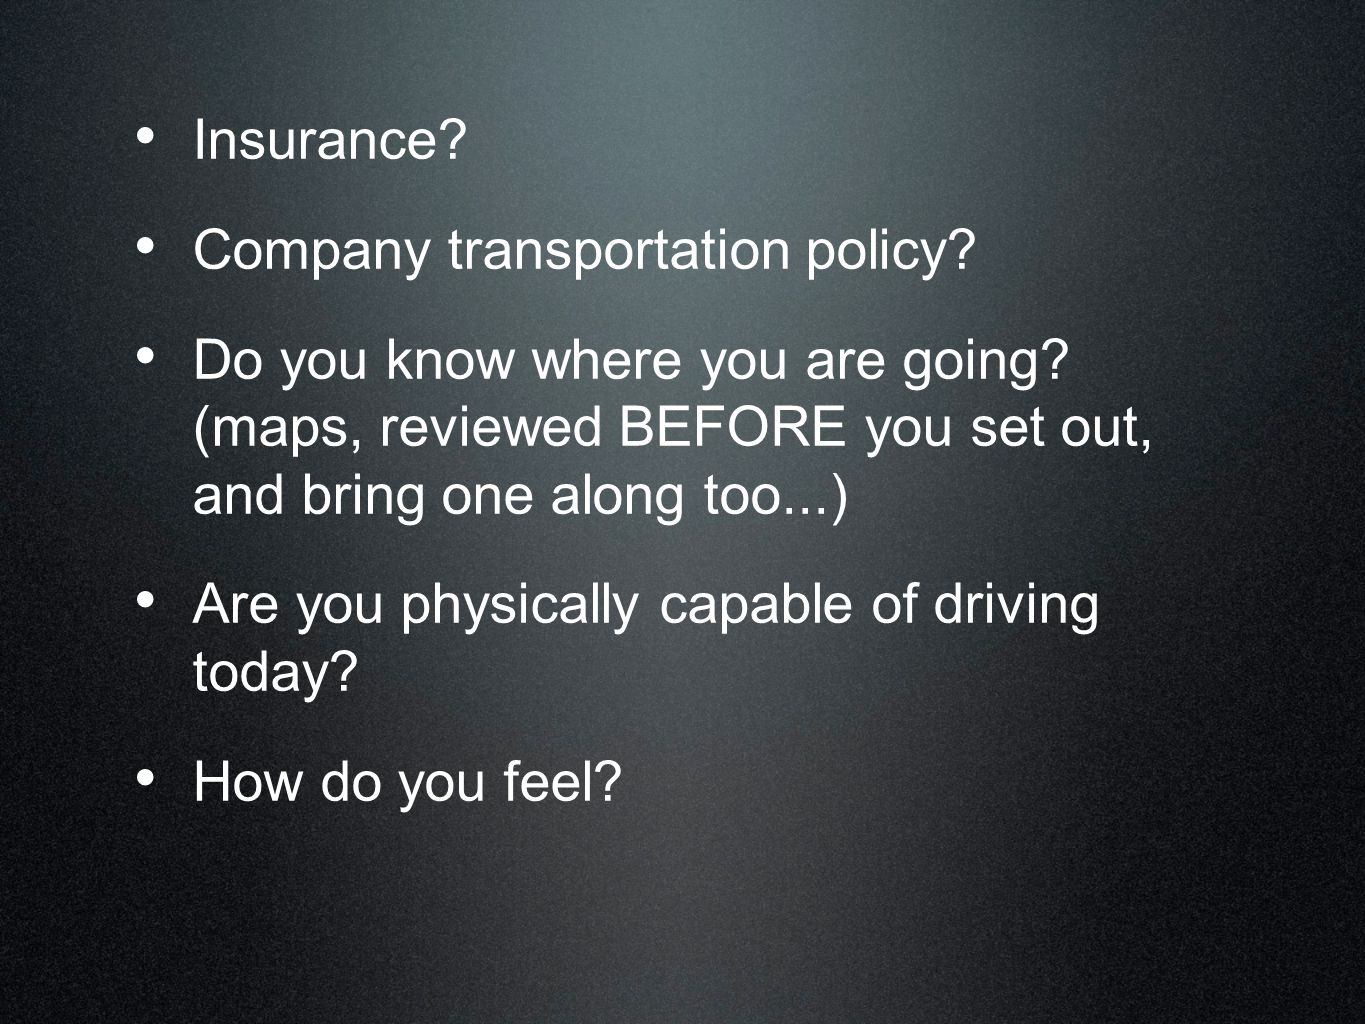 Insurance Company transportation policy Do you know where you are going (maps, reviewed BEFORE you set out, and bring one along too...)